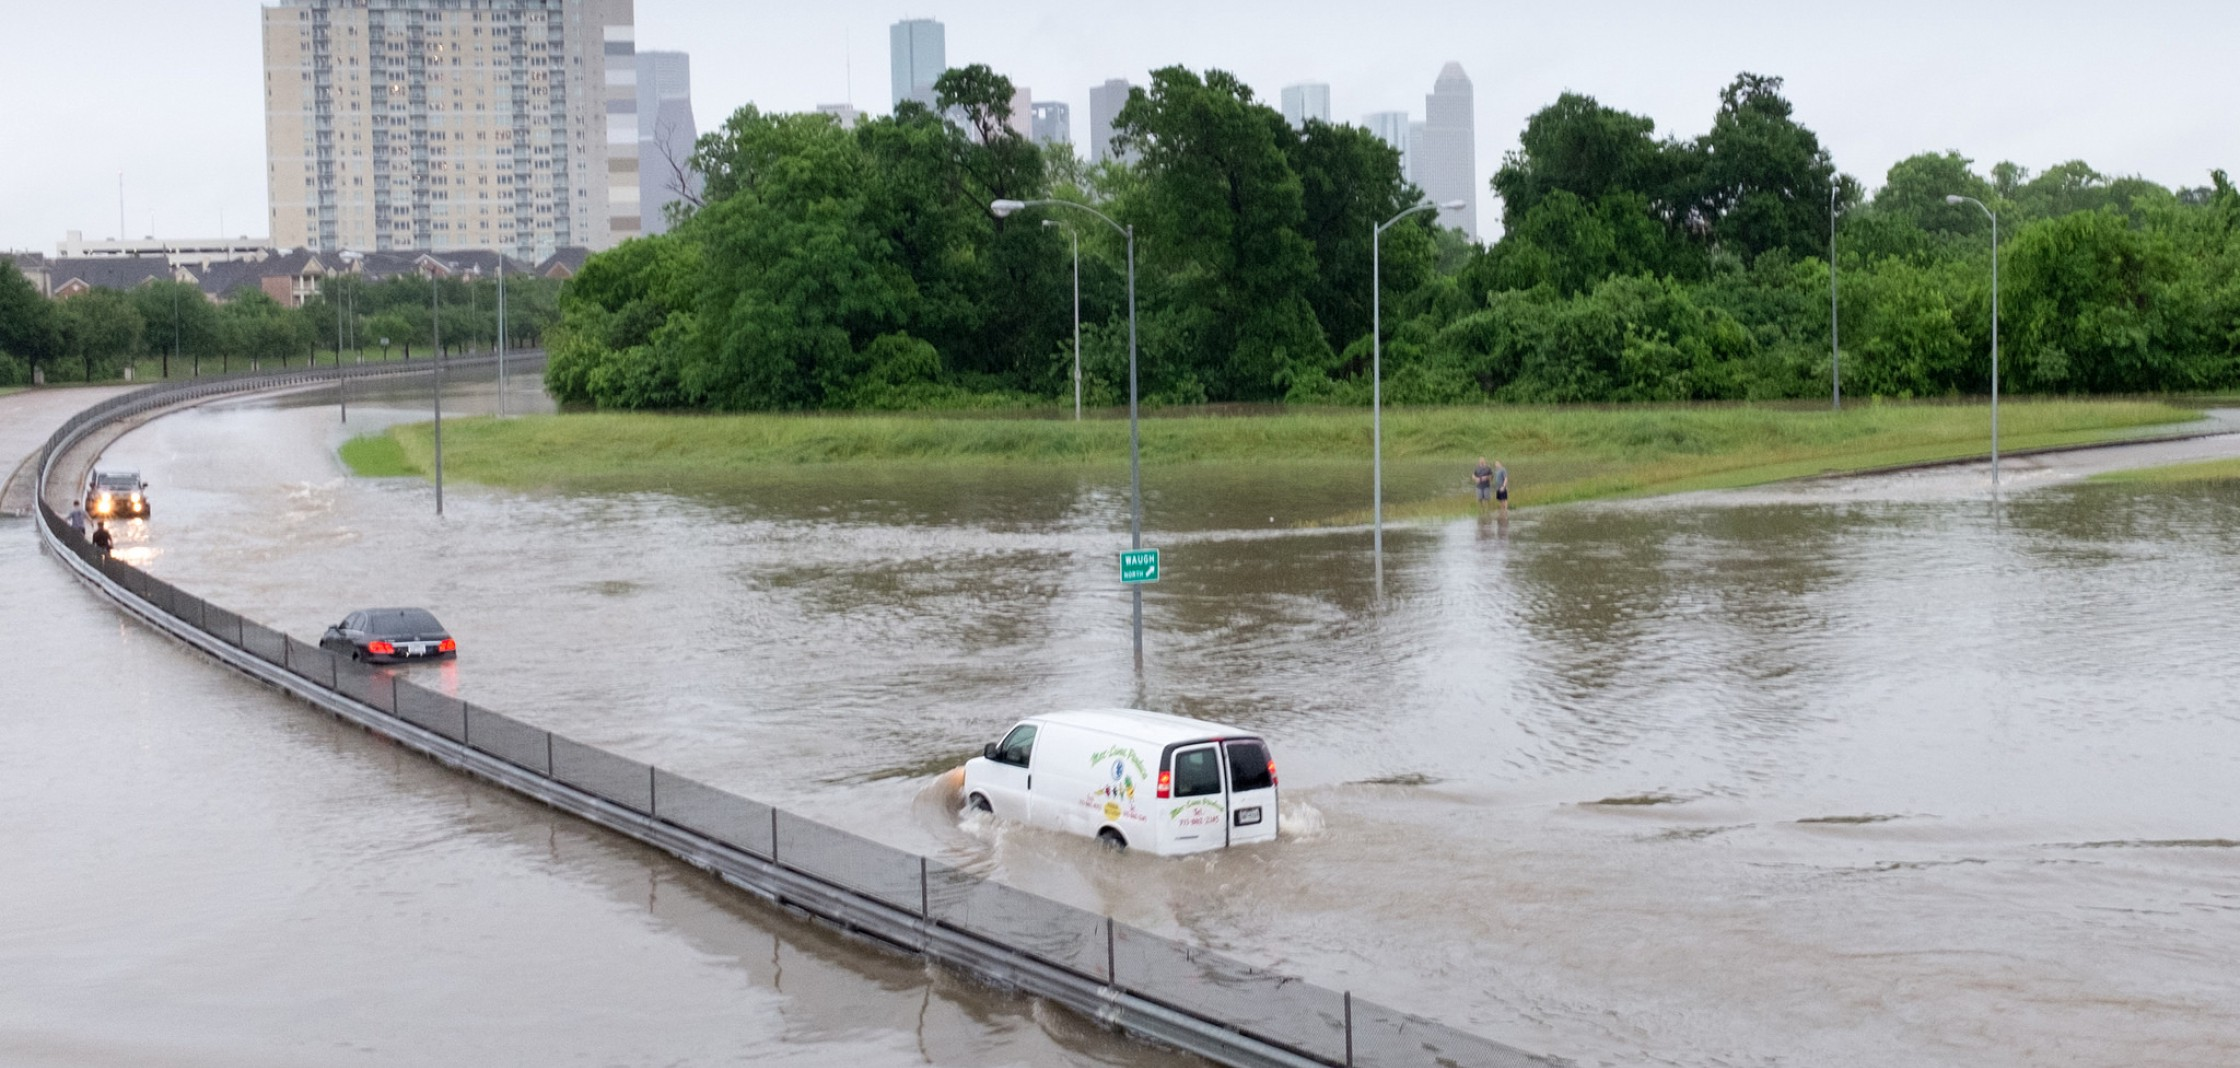 A van driving along a road in Houston, Texas is submerged in water during a flood event.